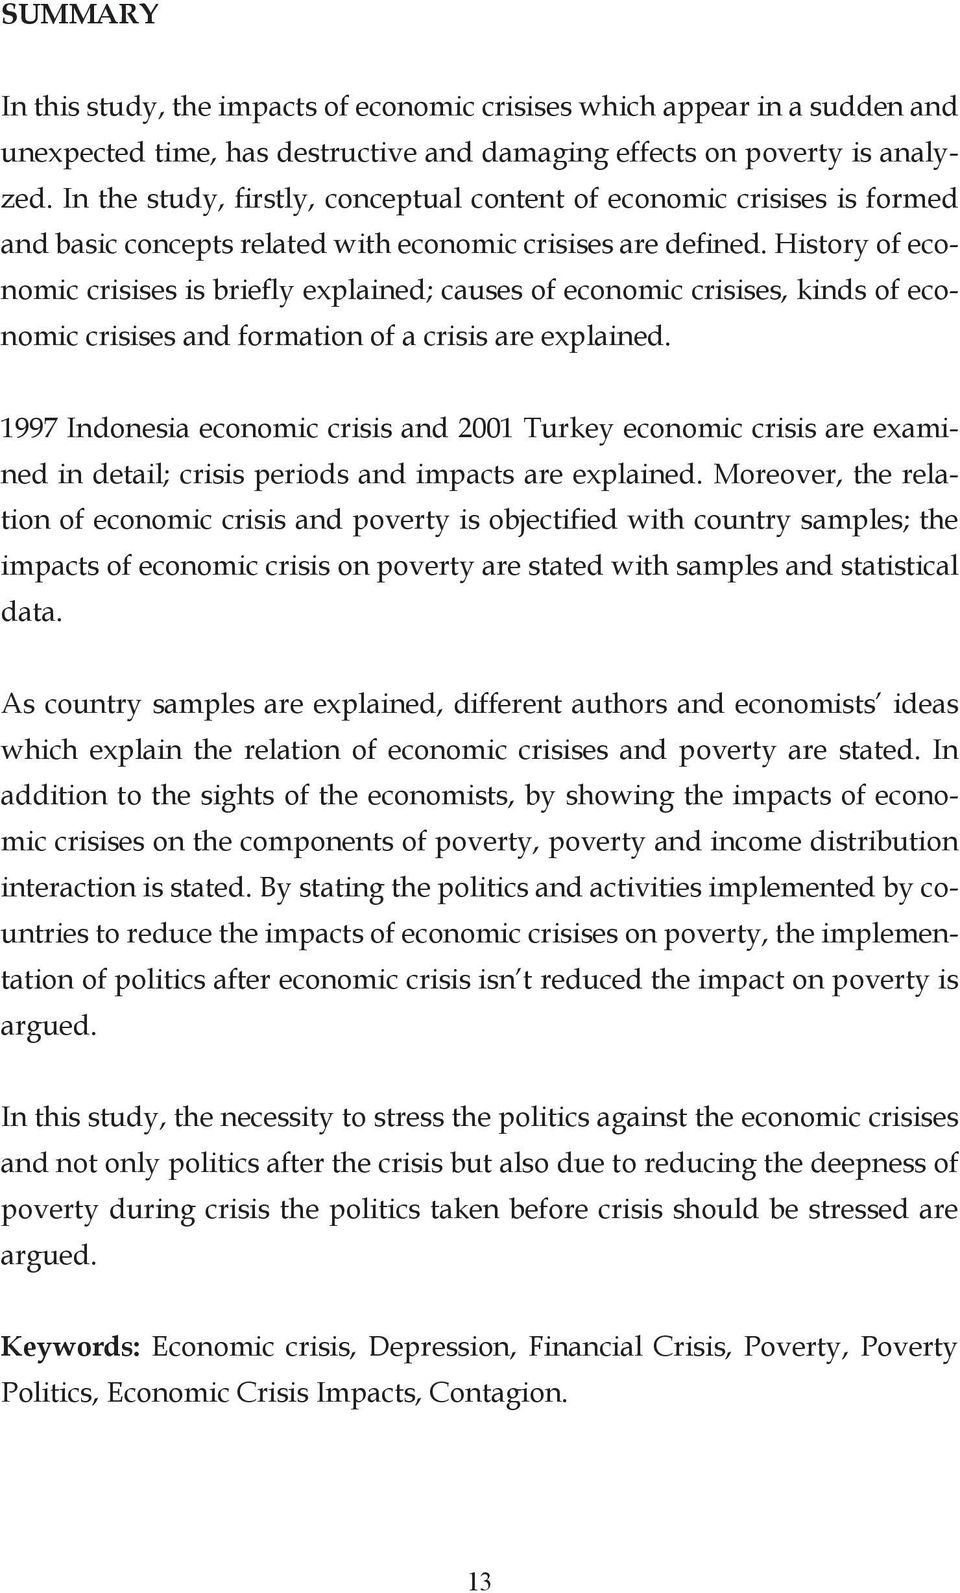 History of economic crisises is briefly explained; causes of economic crisises, kinds of economic crisises and formation of a crisis are explained.